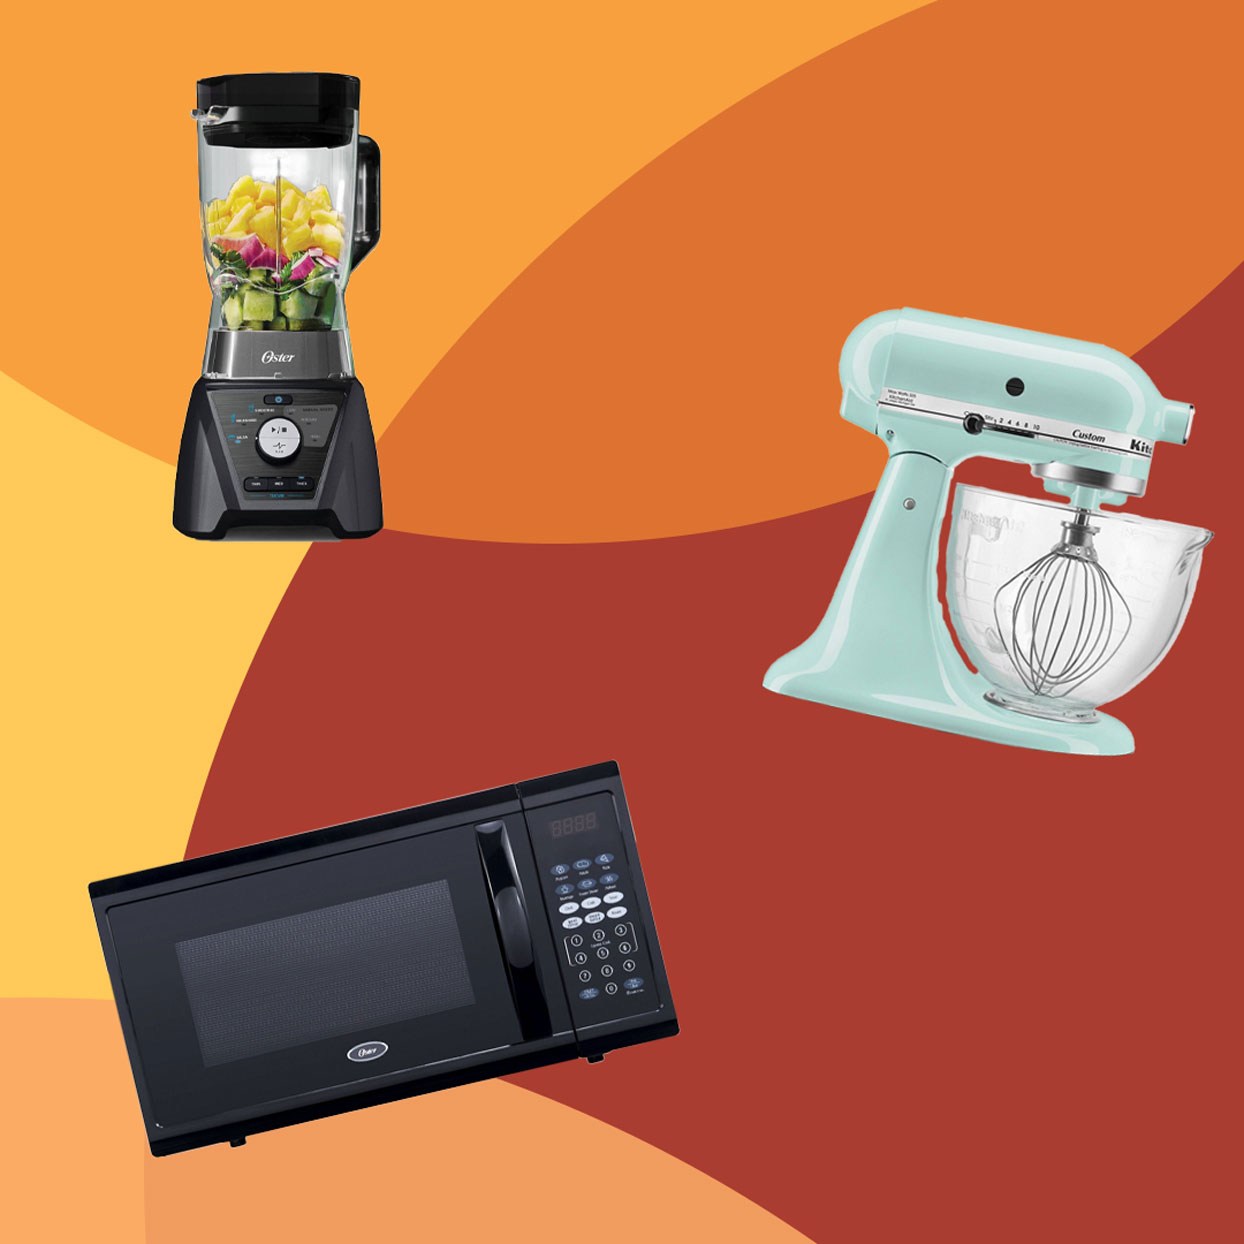 Overwhelmed by Amazon Prime Day? Target Is Offering Huge Discounts on KitchenAid Mixers, Instant Pots and More